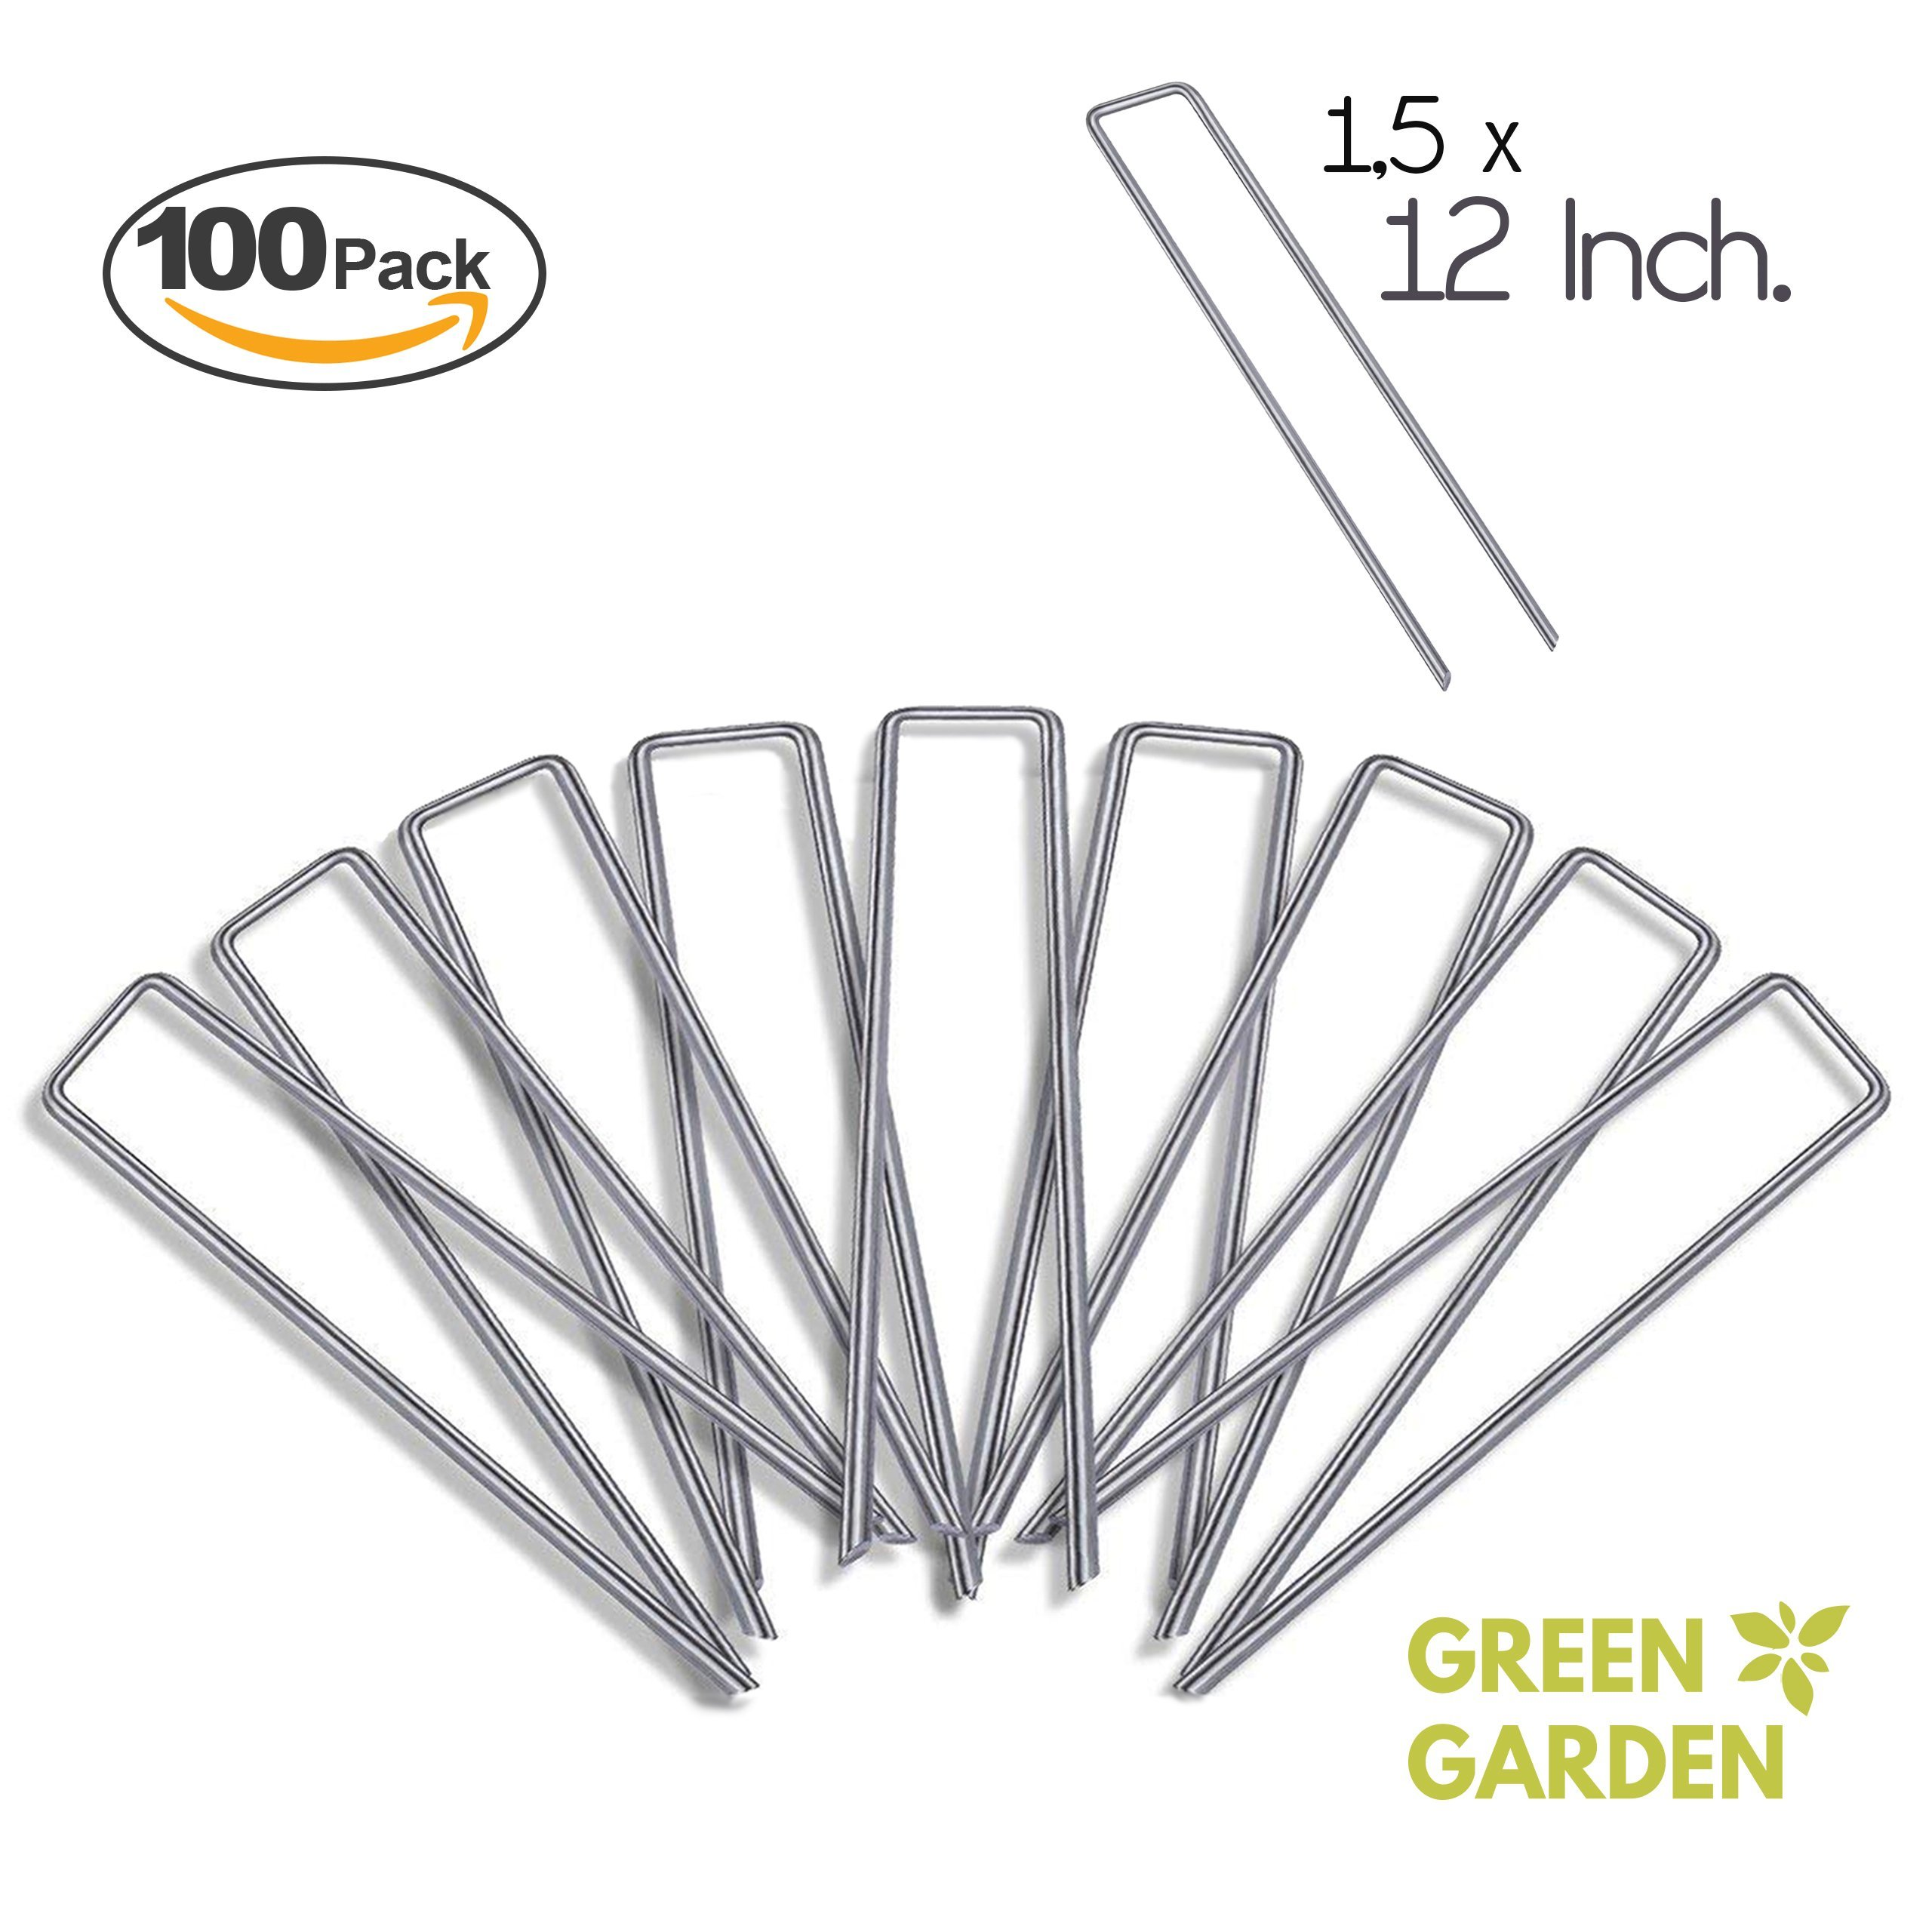 GreenGarden 12 Inch Garden Landscape Staples Stakes Pins SOD | 100 Pack | Galvanized Steel | For Weed Barrier Fabric, Ground Cover, Soaker Hose, Lawn Drippers, Drip Irrigation Tubing etc. | by